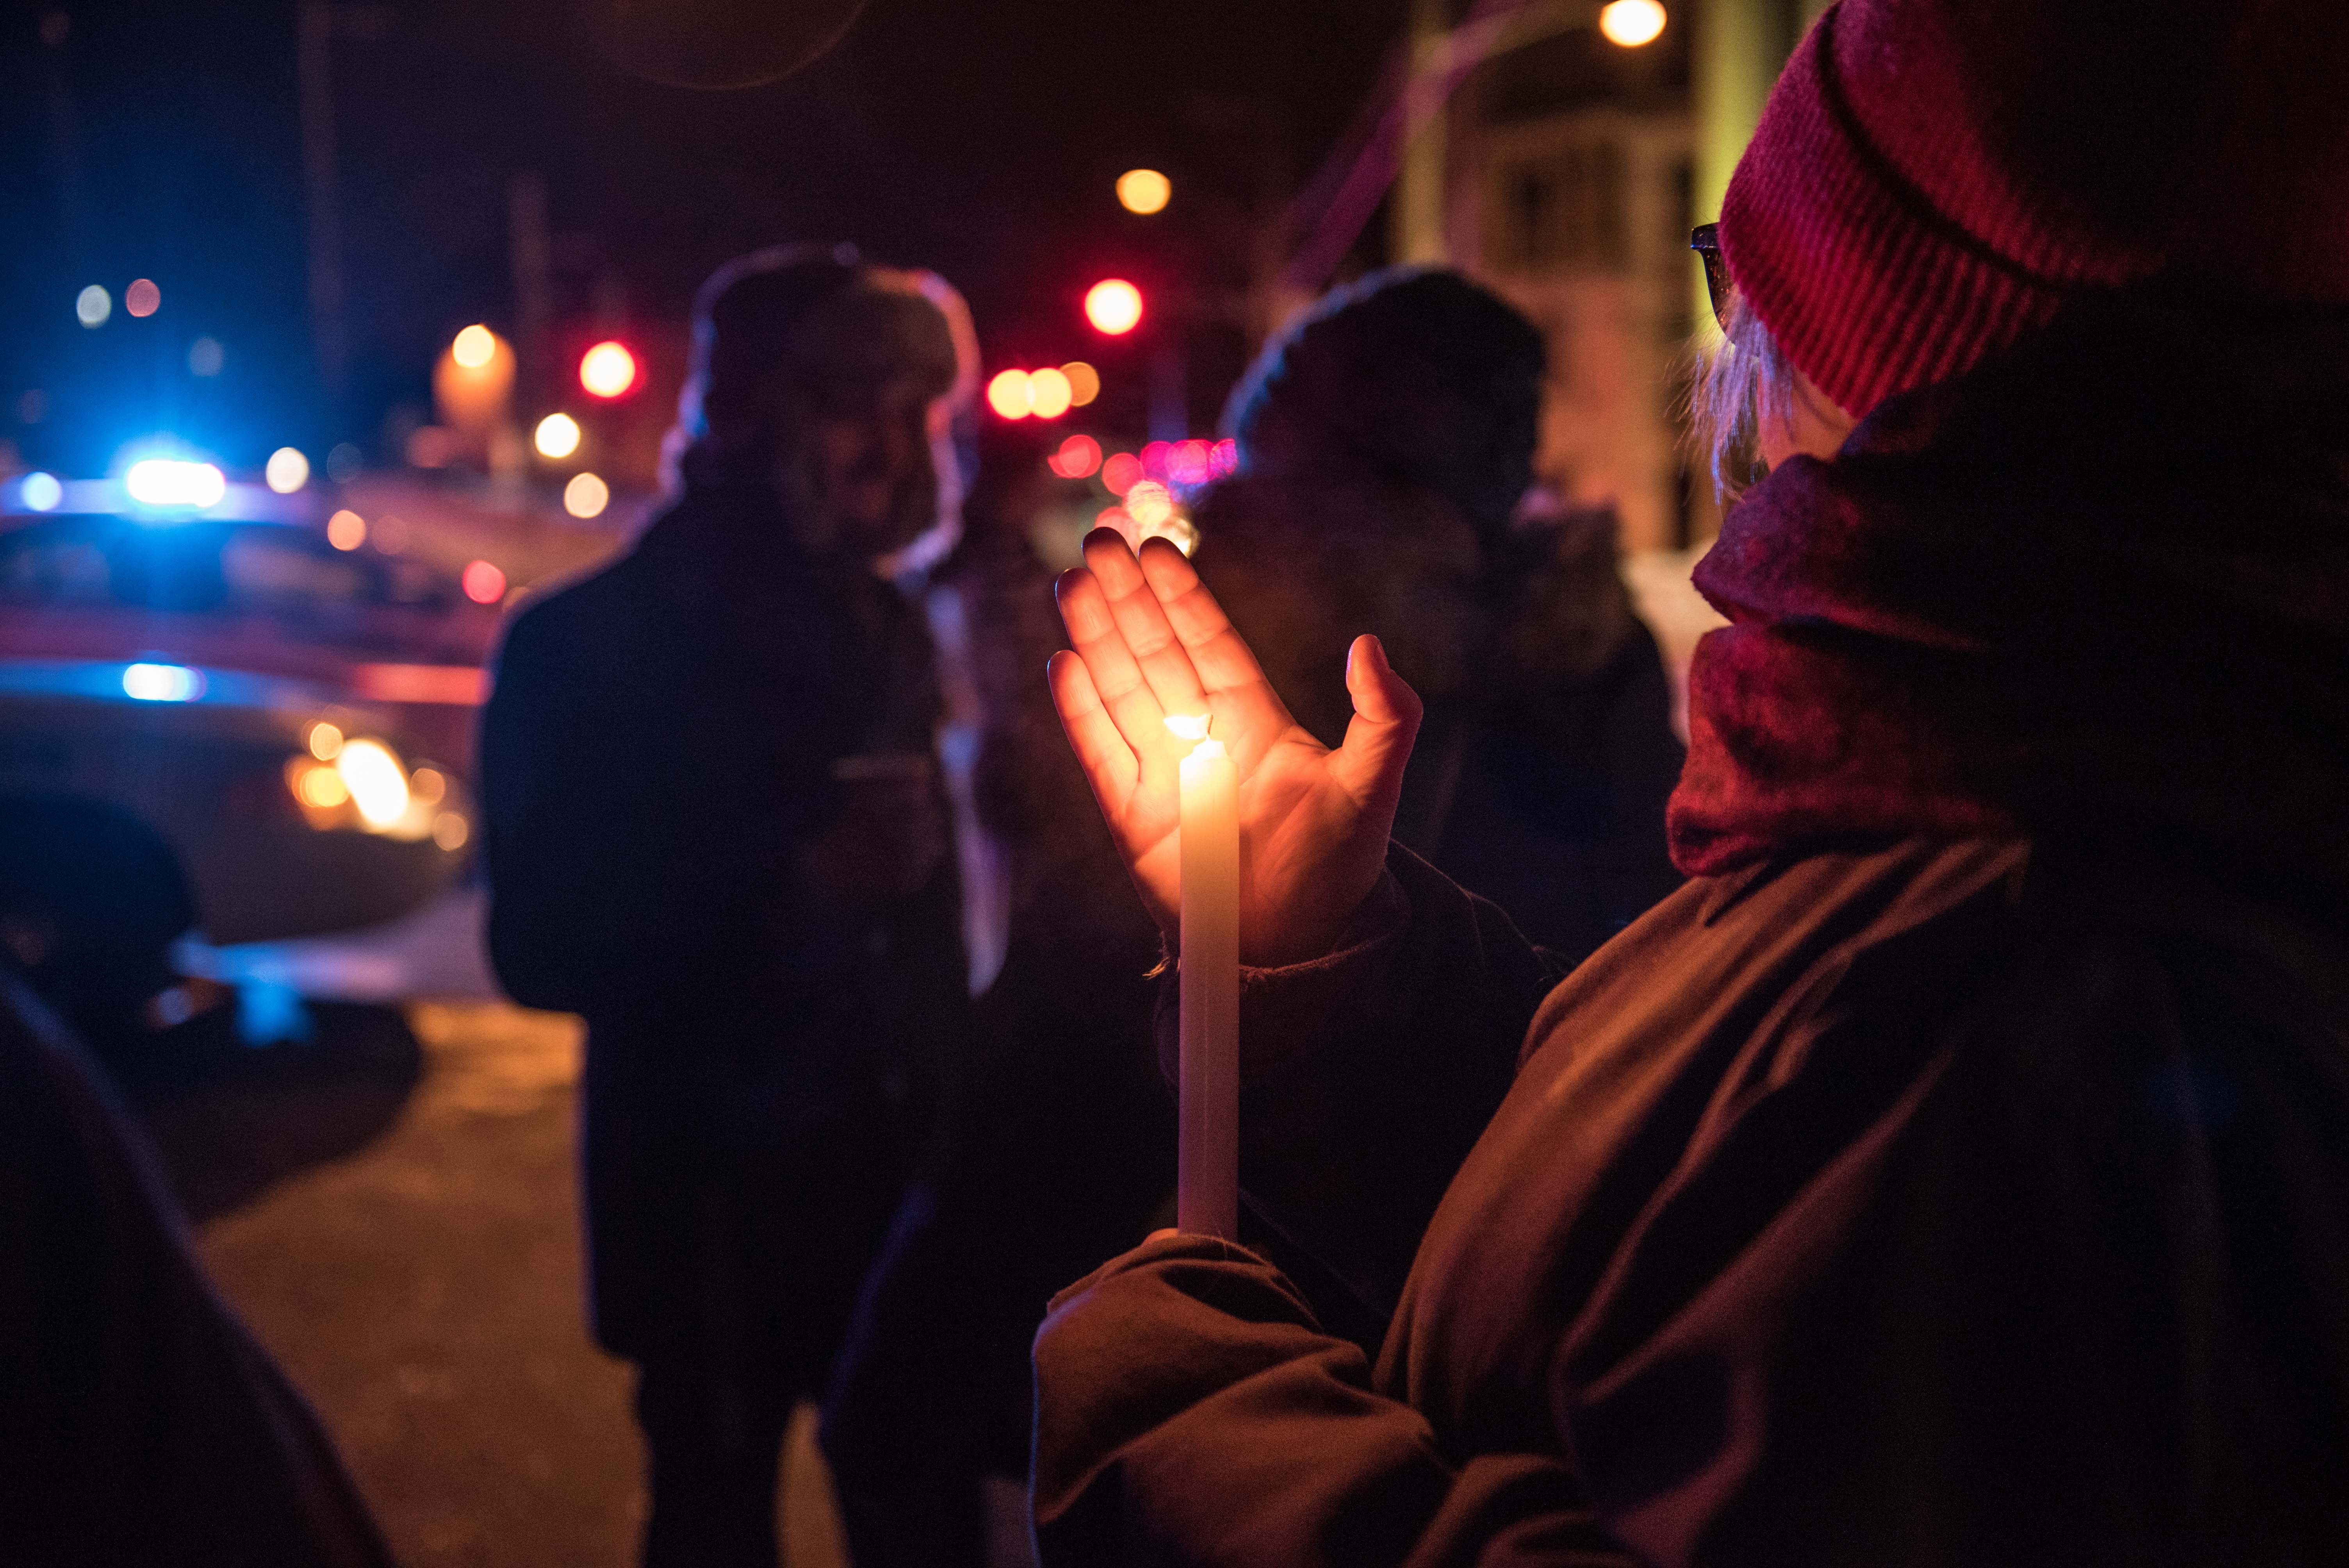 People come to show their support after a shooting occurred in a mosque at the Québec City Islamic cultural center on Sainte-Foy Street in Quebec city on January 29, 2017. (Getty)